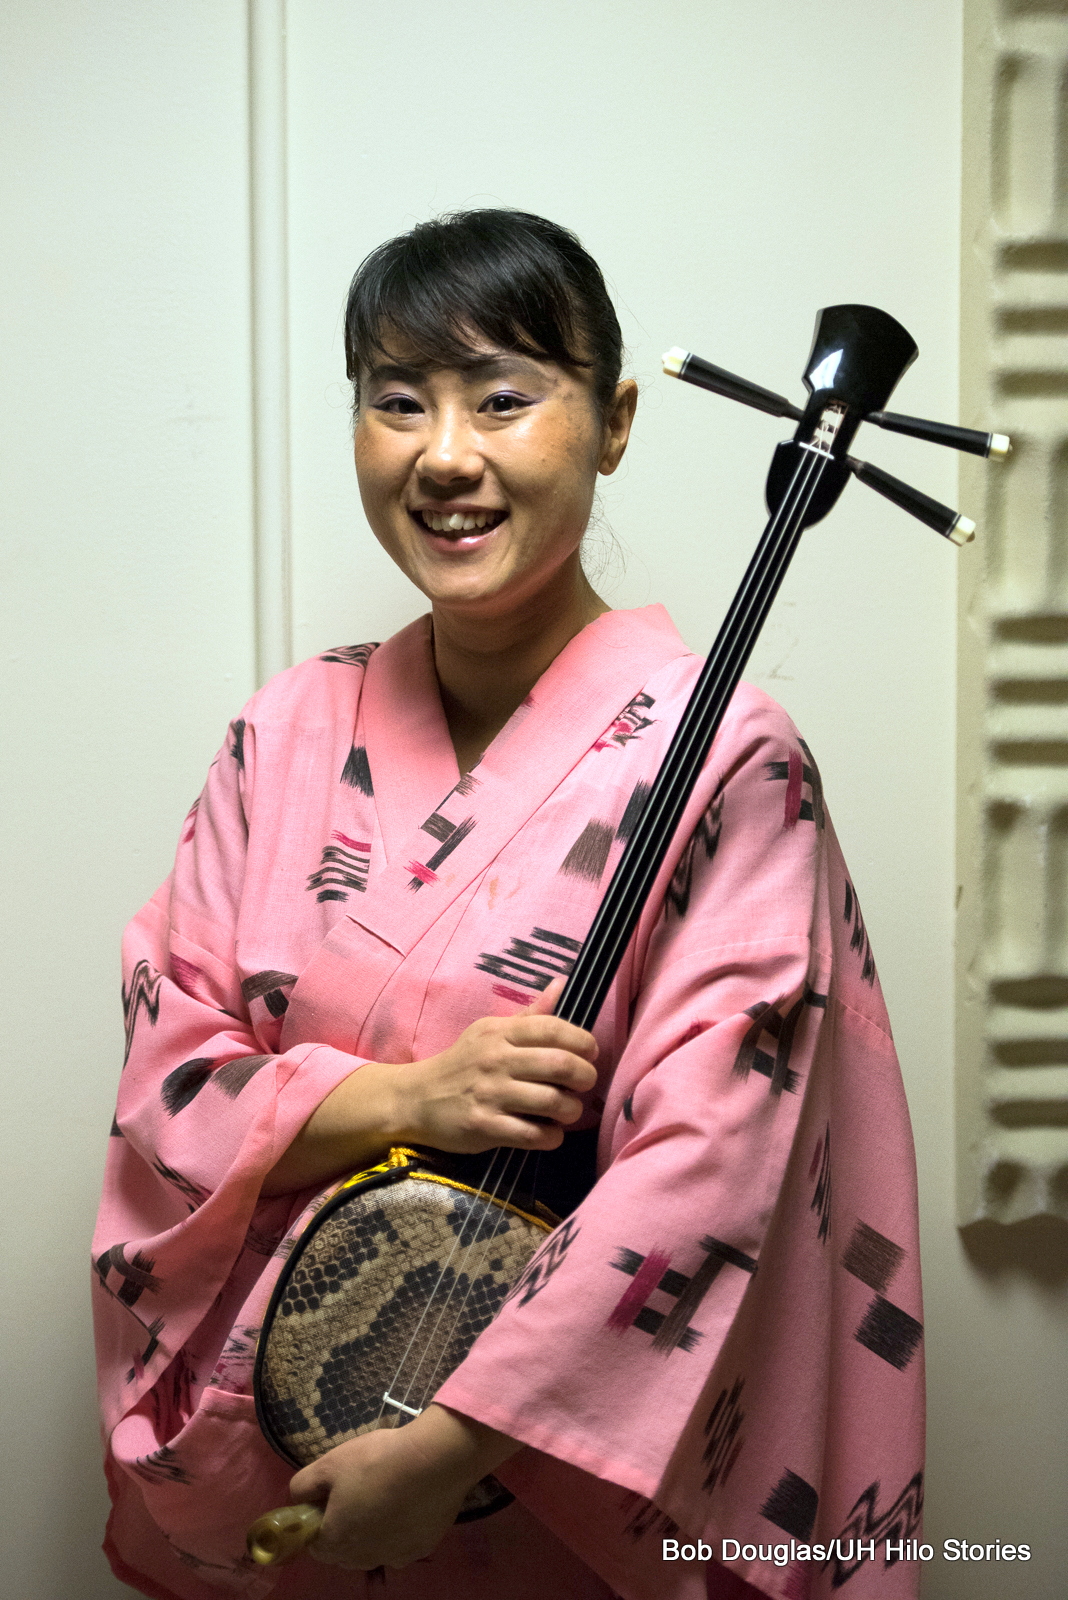 Woman in traditional attire and holding stringed instrument.